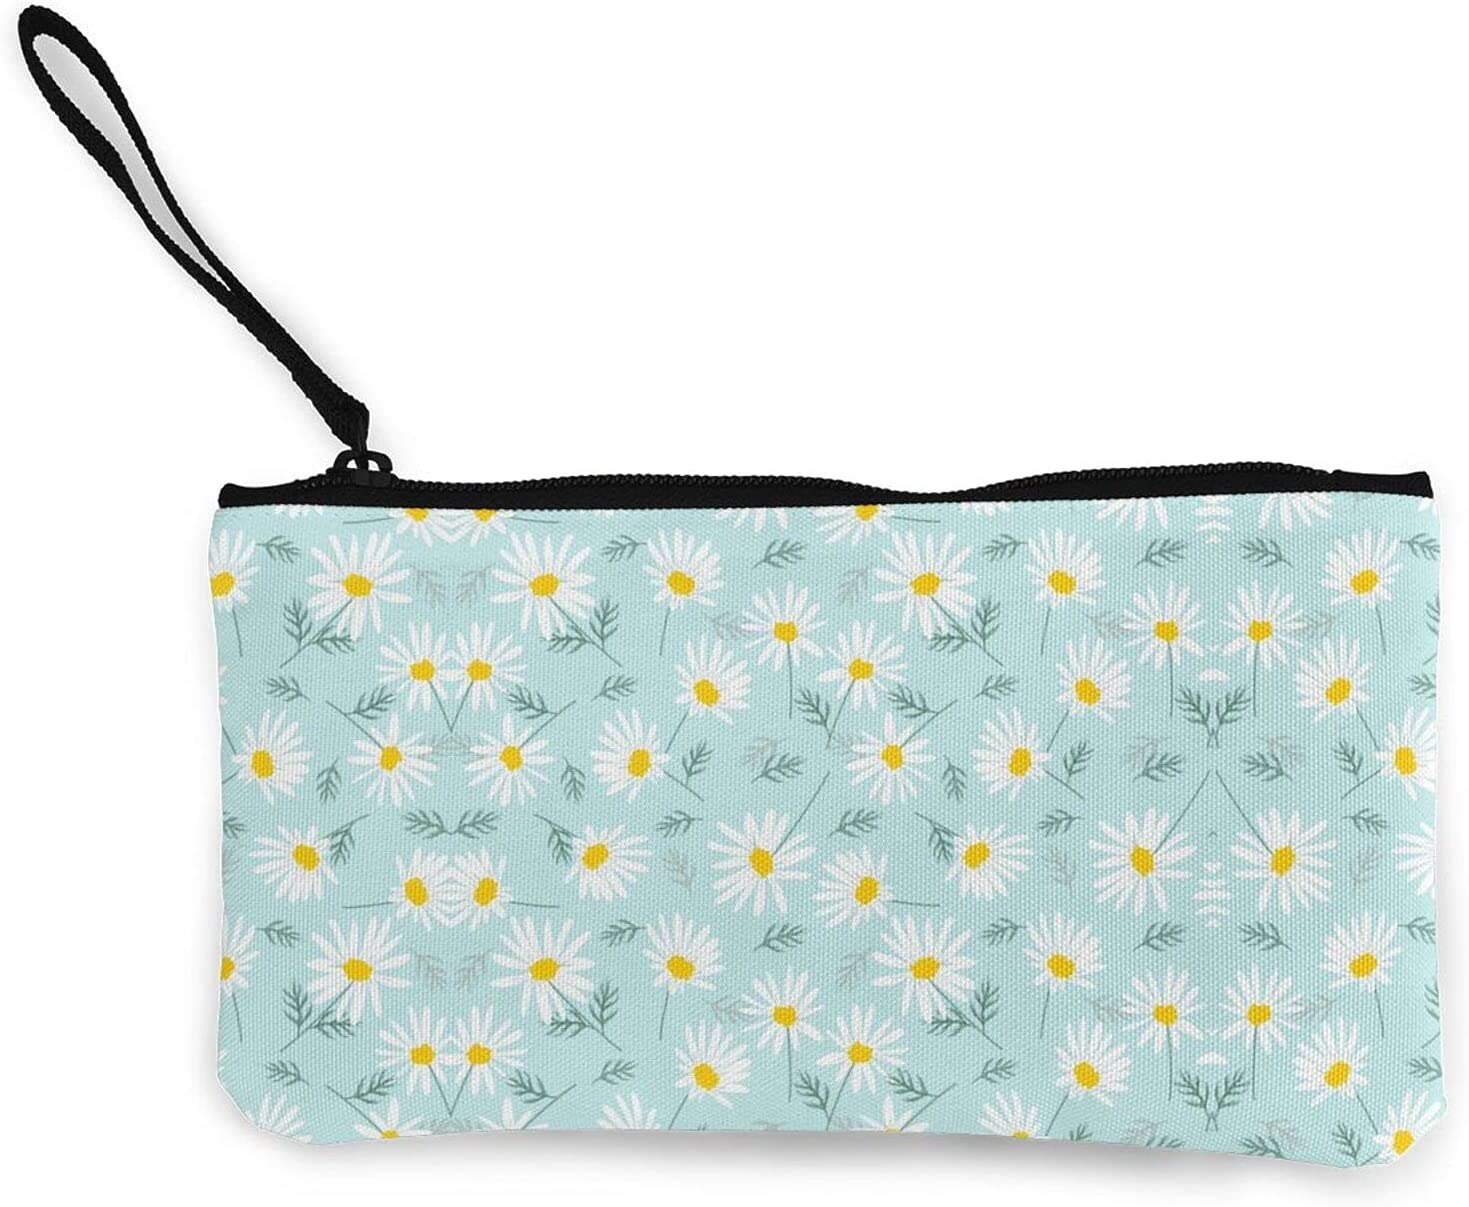 Botanical Blue And White Dainty Floral Daisy Zipper Pouch/ Canvas Coin Purse Wallet/ Cute Mini Change Wallet For Women/ Pouch Card Holder Phone Storage Bag